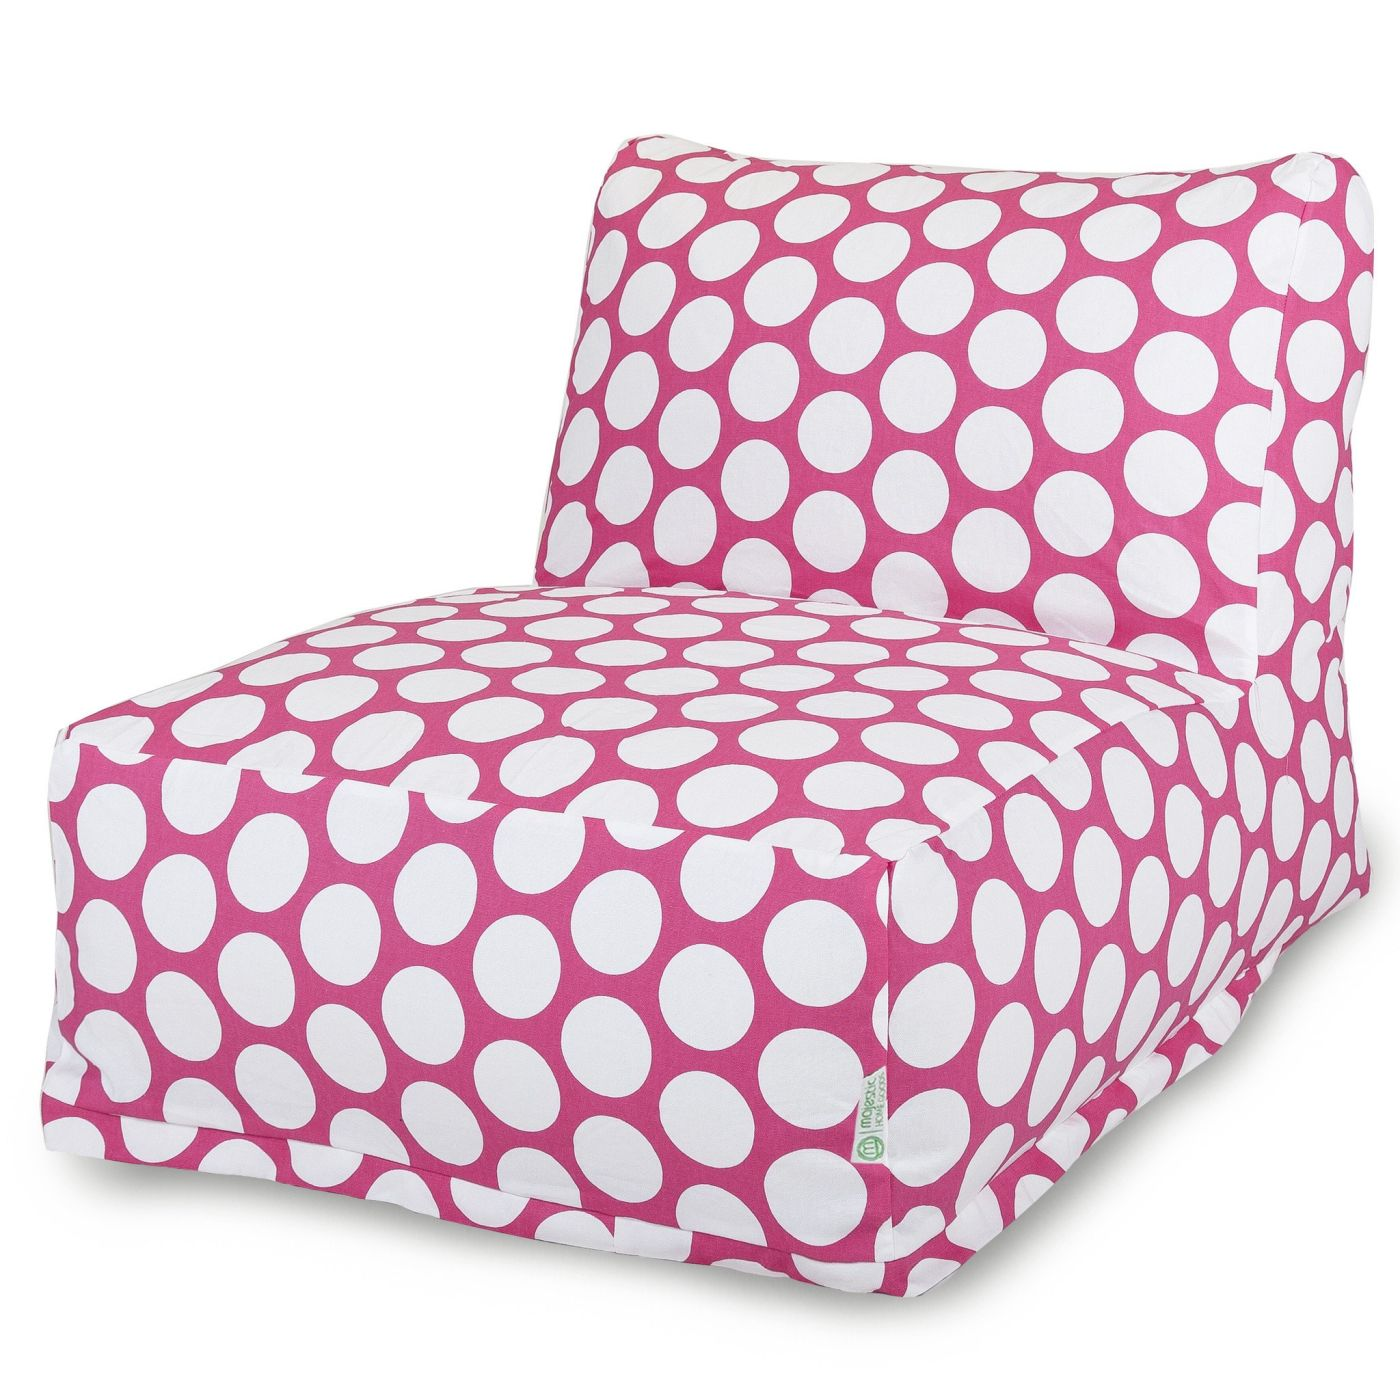 Pink Chairs For Adults At Contemporary Furniture Warehouse   Accent Chairs,  Armchairs, Bean Bag Chairs, Bean Bags, Dining Chairs, Kids Furniture, ...